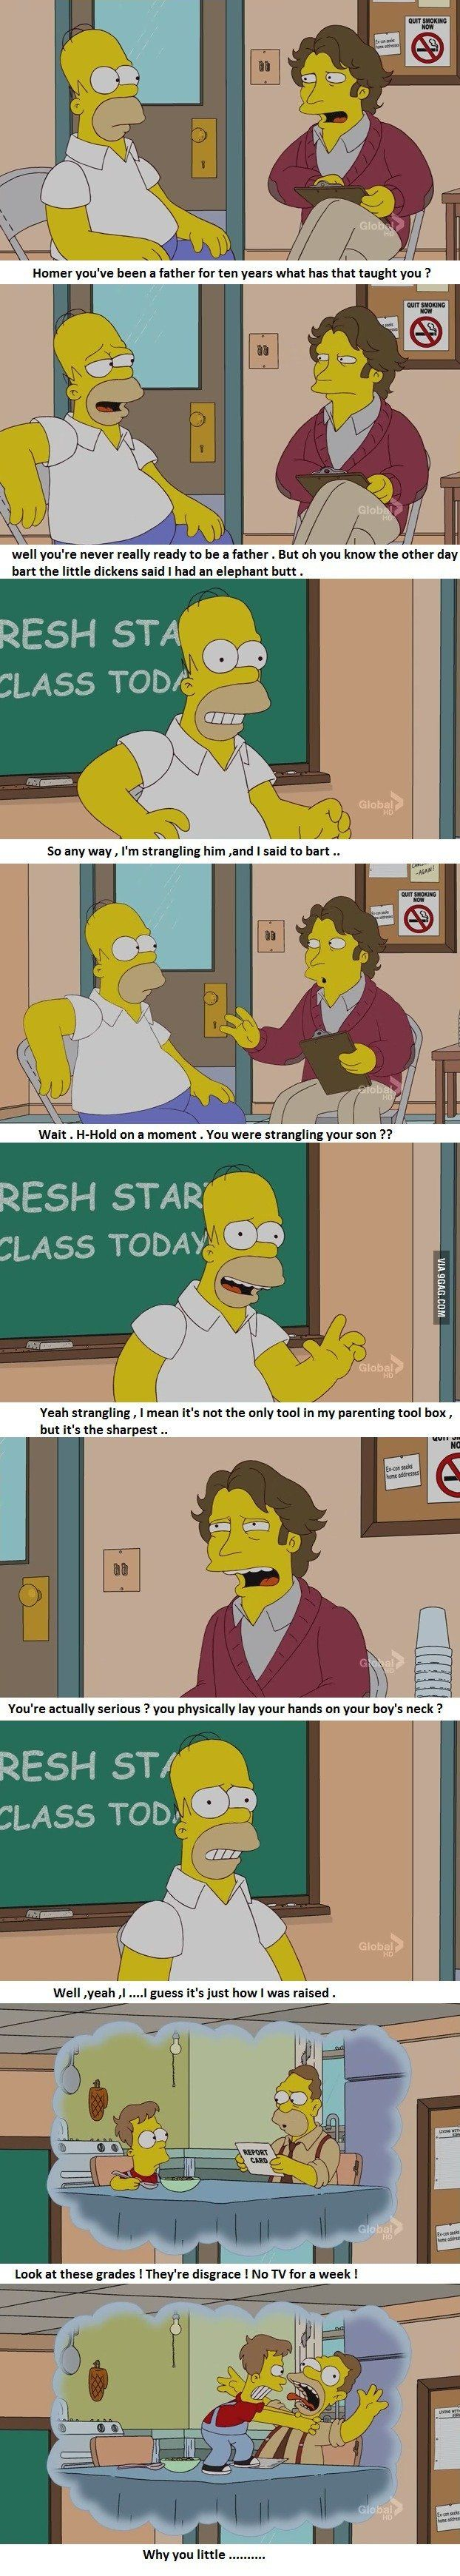 Homers Parenting Tool Box. The Simpsons